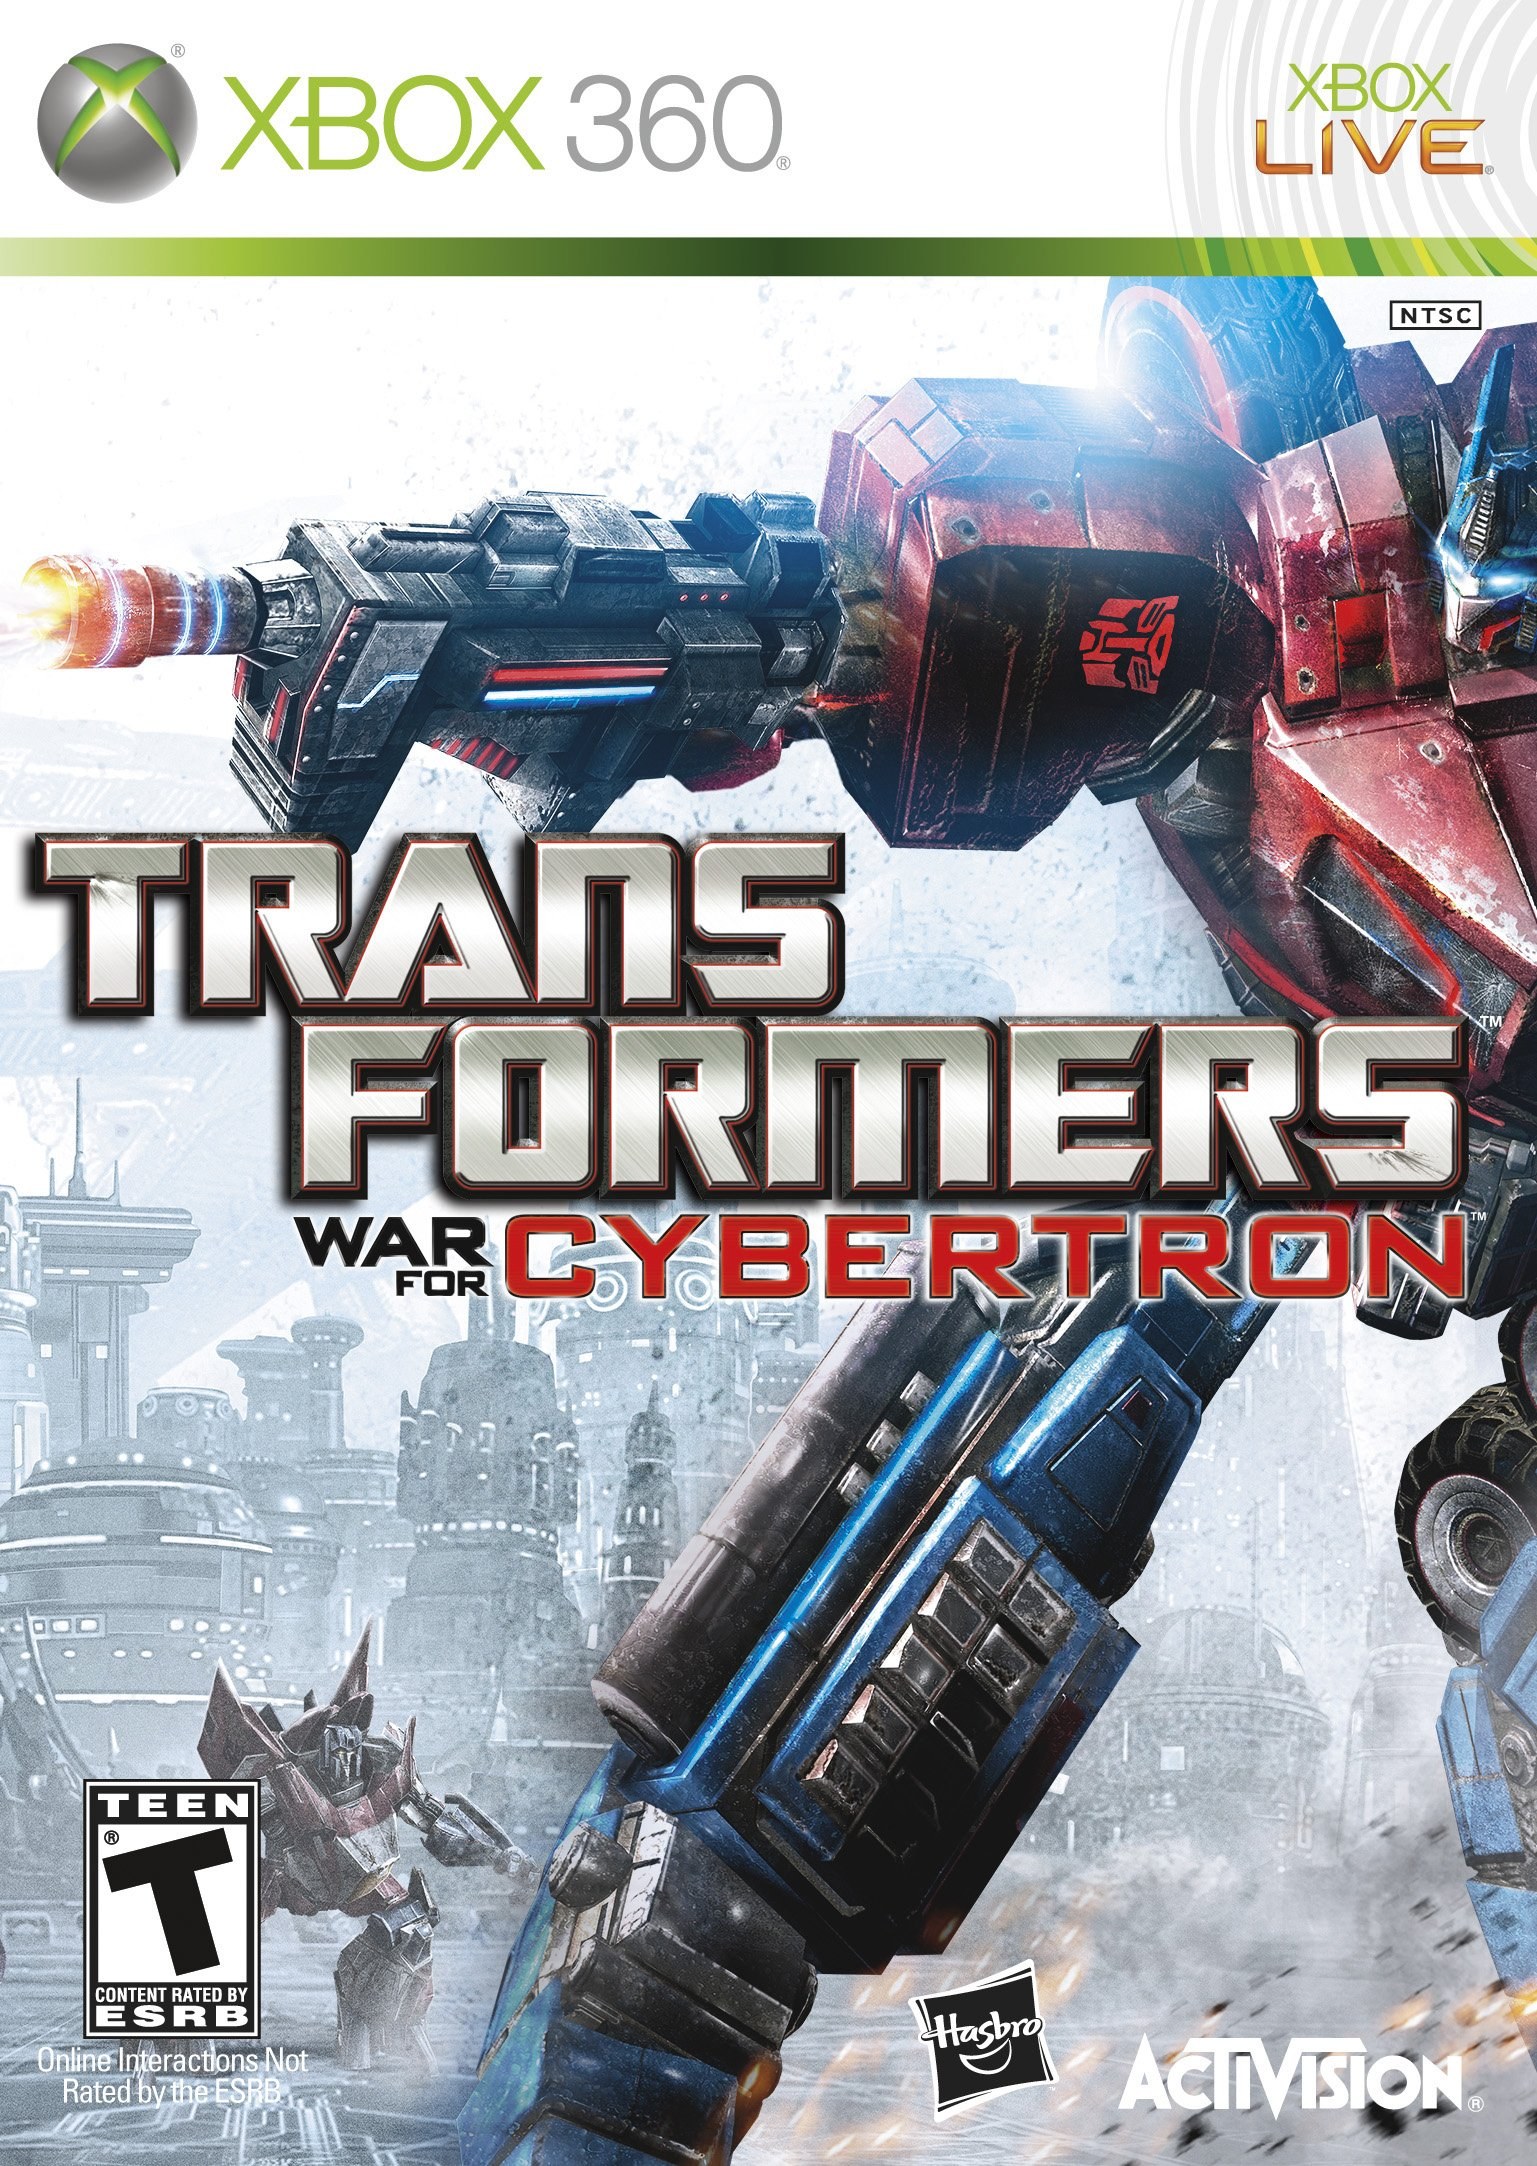 Transformers: war for cybertron xbox 360 review   avforums.